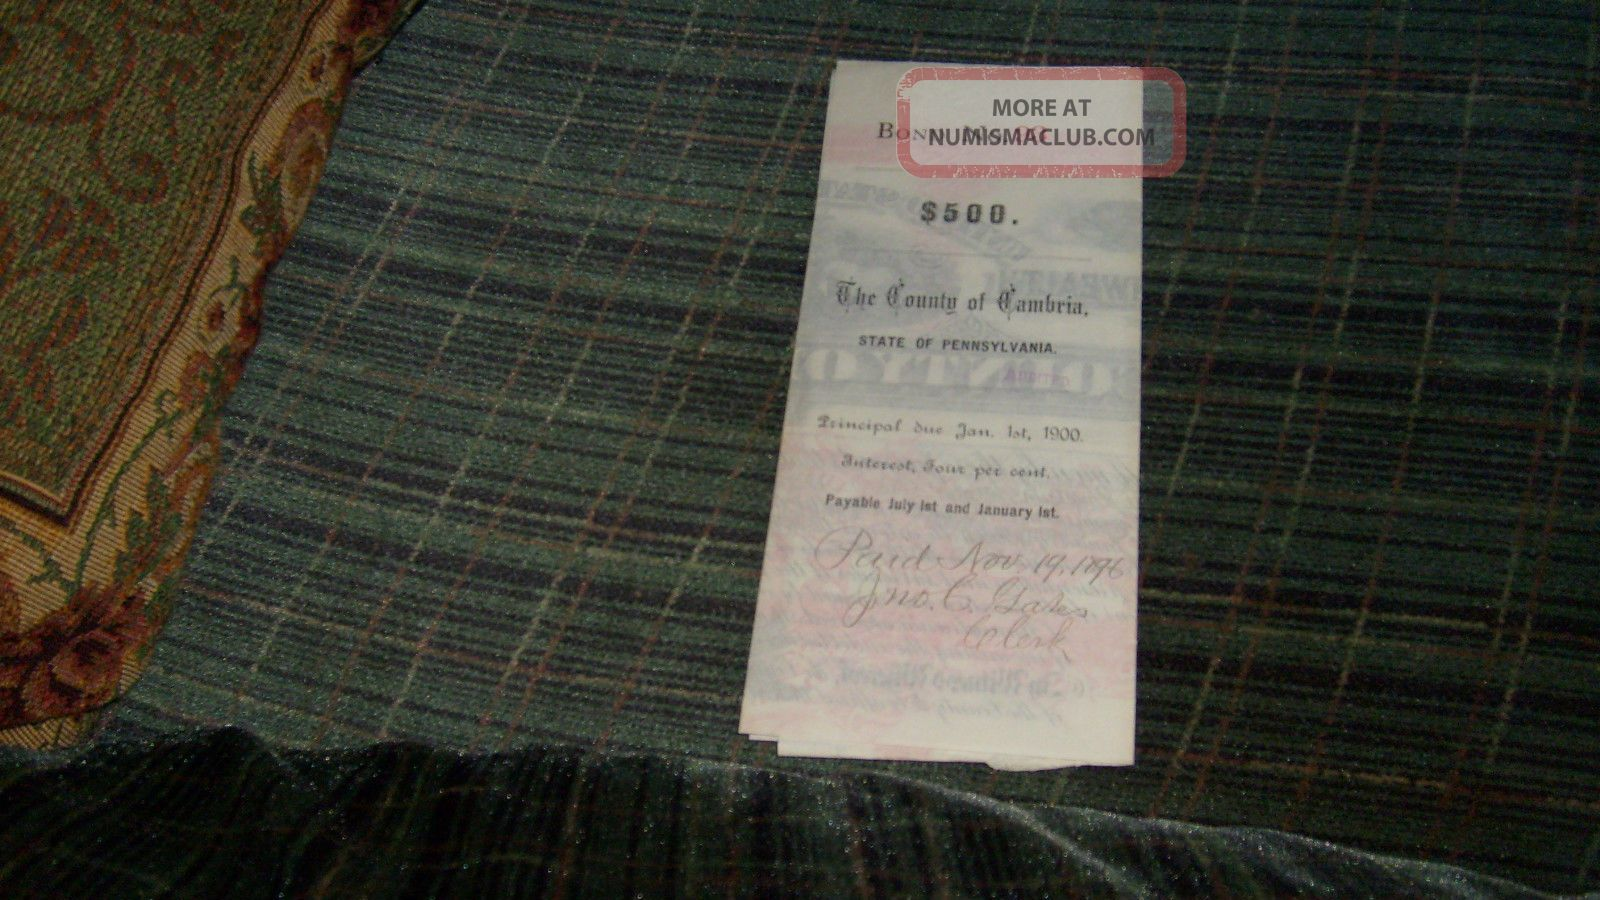 $500.  00 County Of Cambria,  Ebensburg,  Pa.  1890 Bond With Coupons Stocks & Bonds, Scripophily photo